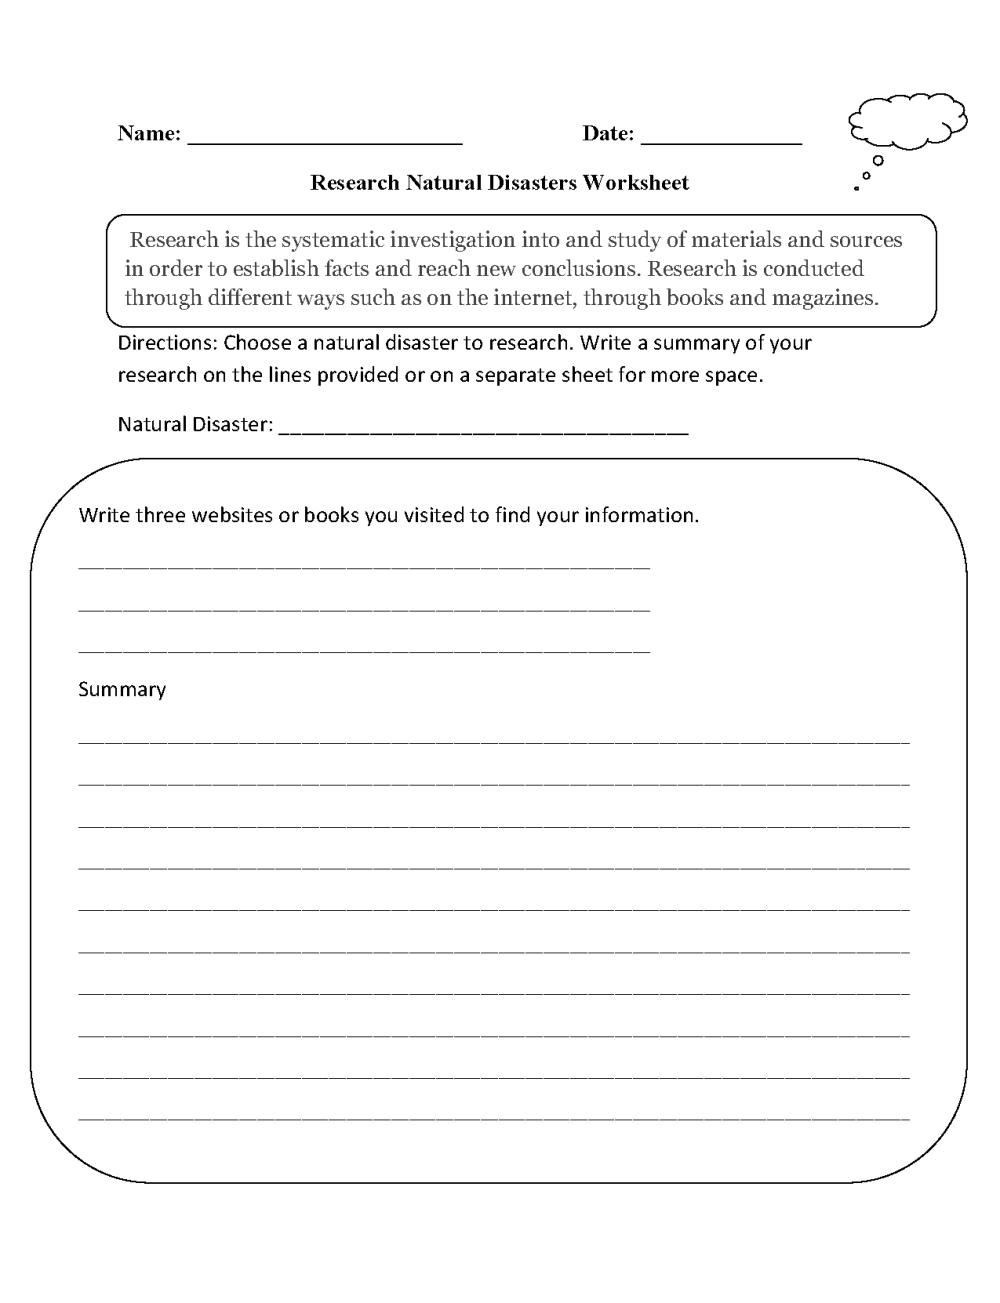 medium resolution of Research Worksheets   Research Natural Disasters Worksheet